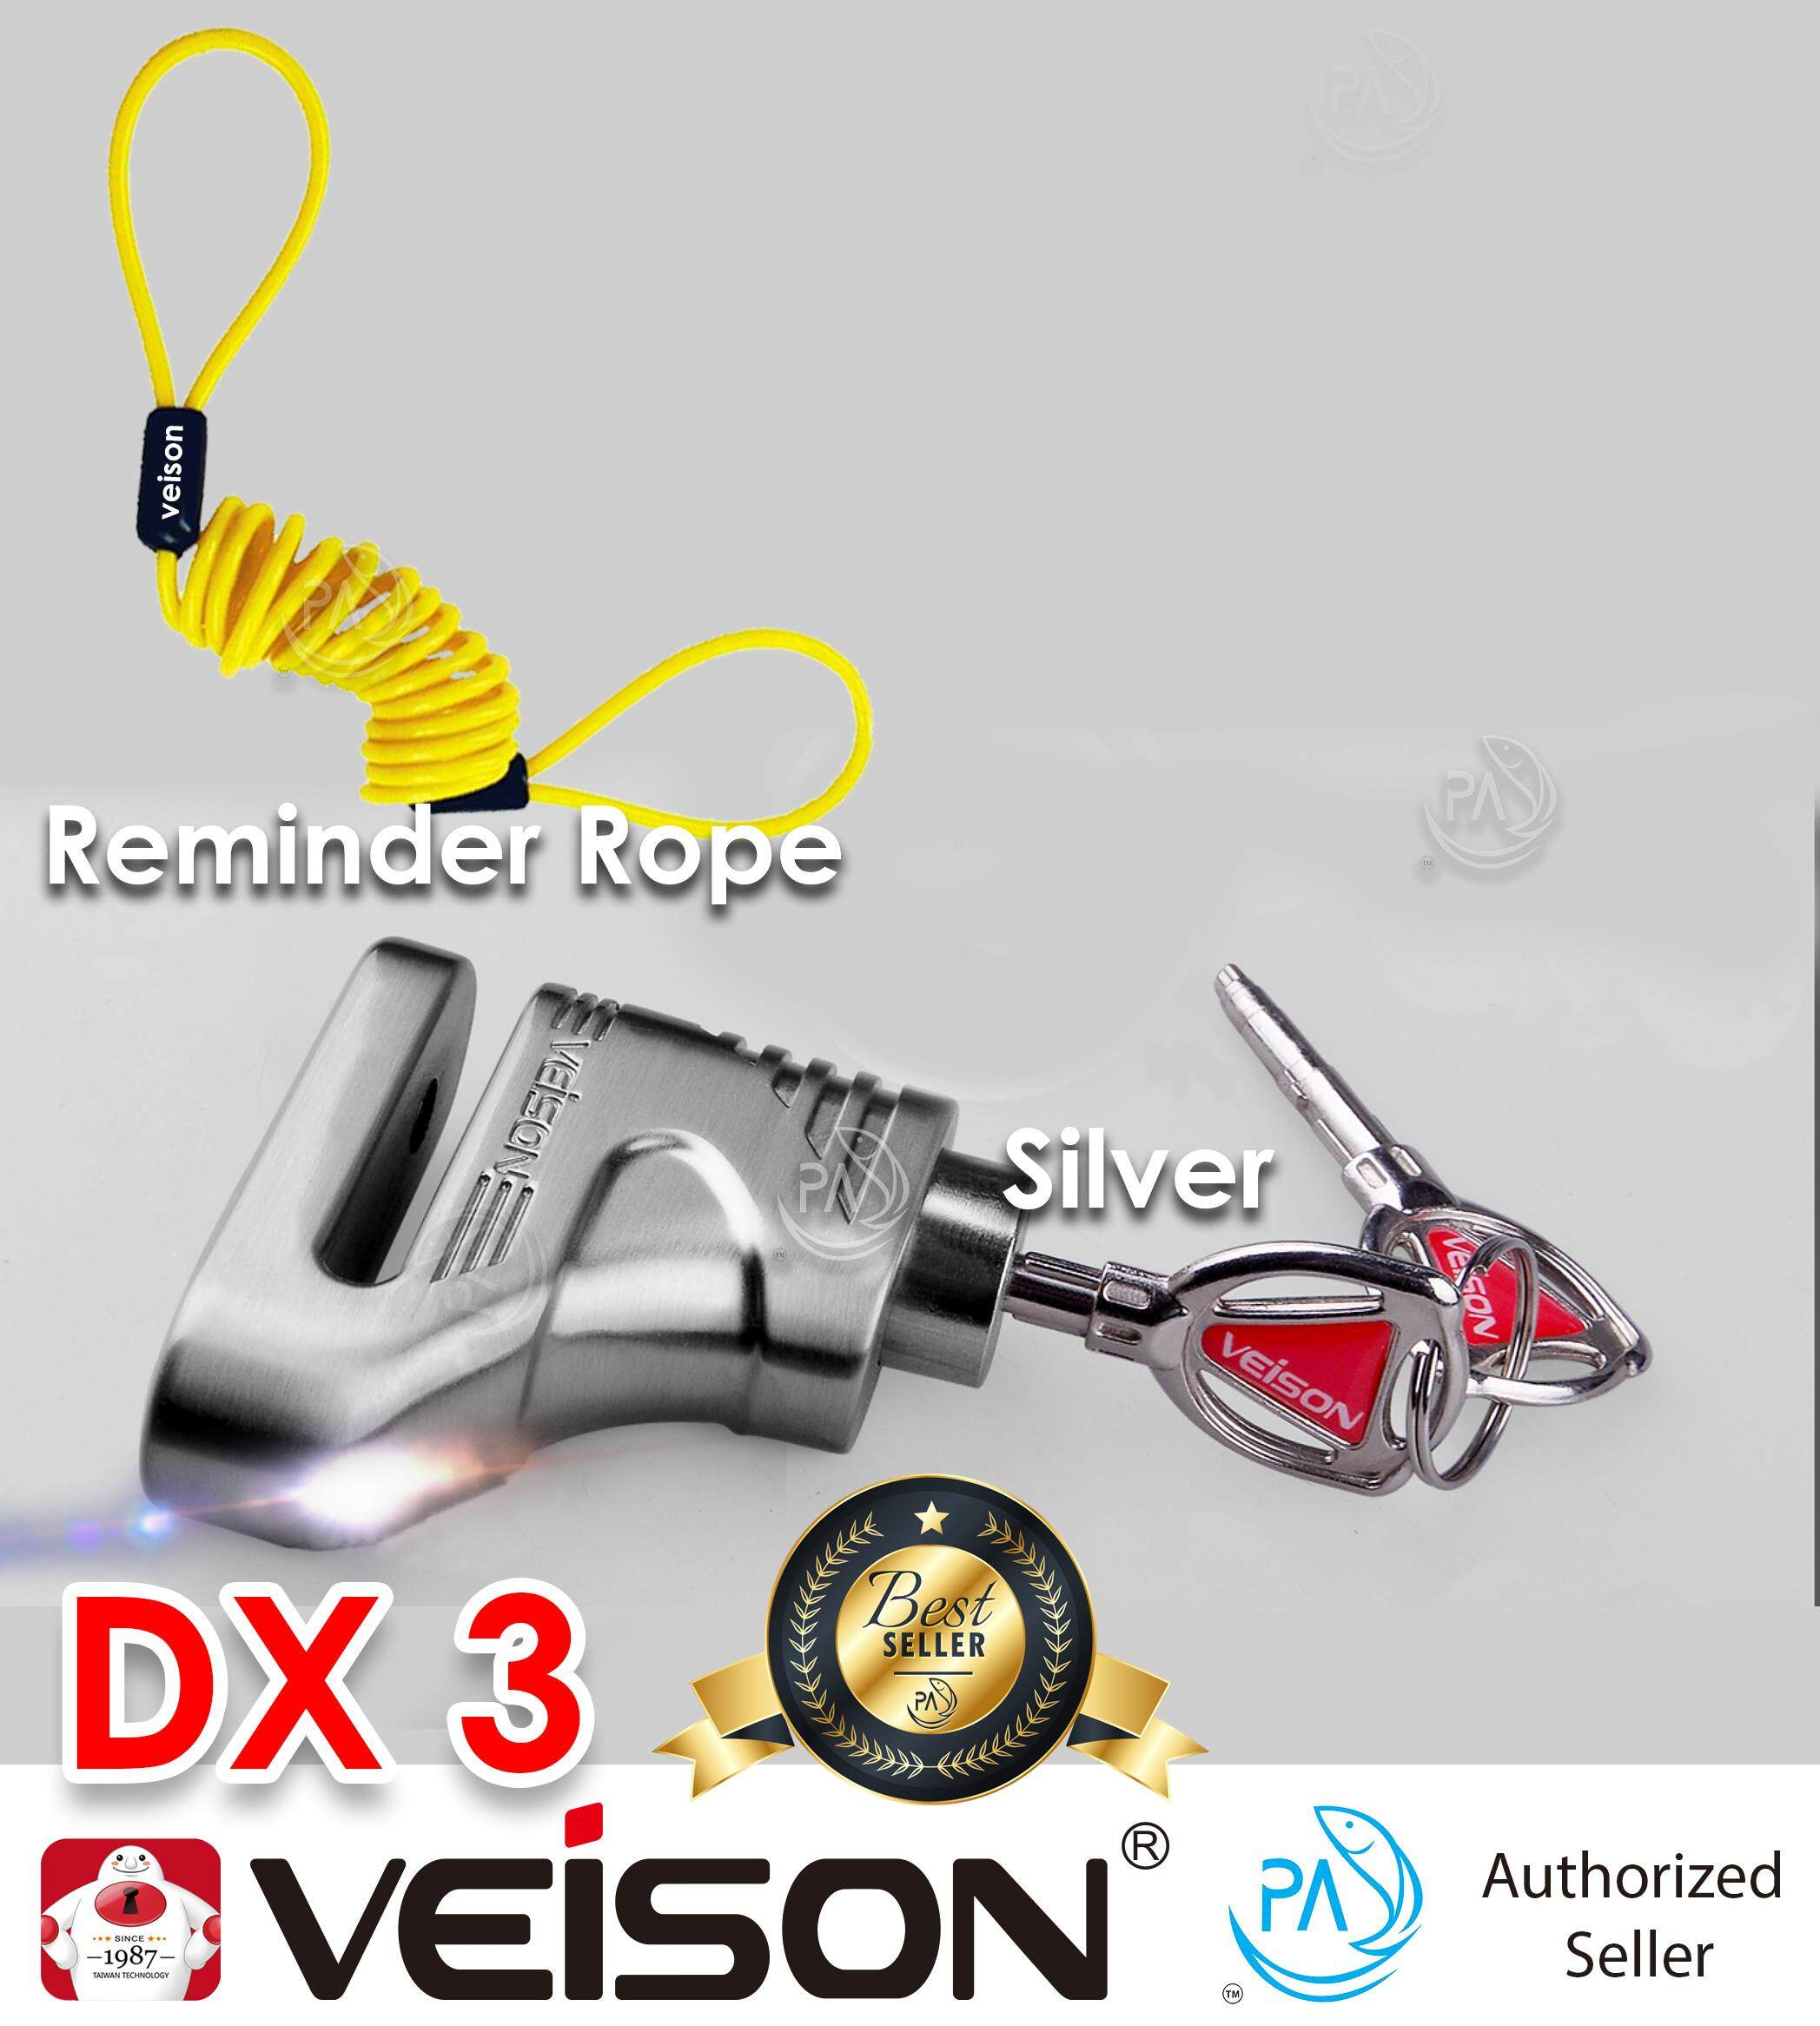 Taiwan Veison ( FULL SET ) PA DX3 and D301 100% Original Disc Lock for  Motorcycle / Motor Lock / Disc Lock / Veison Lock / Bike Lock with BEST  COMBO